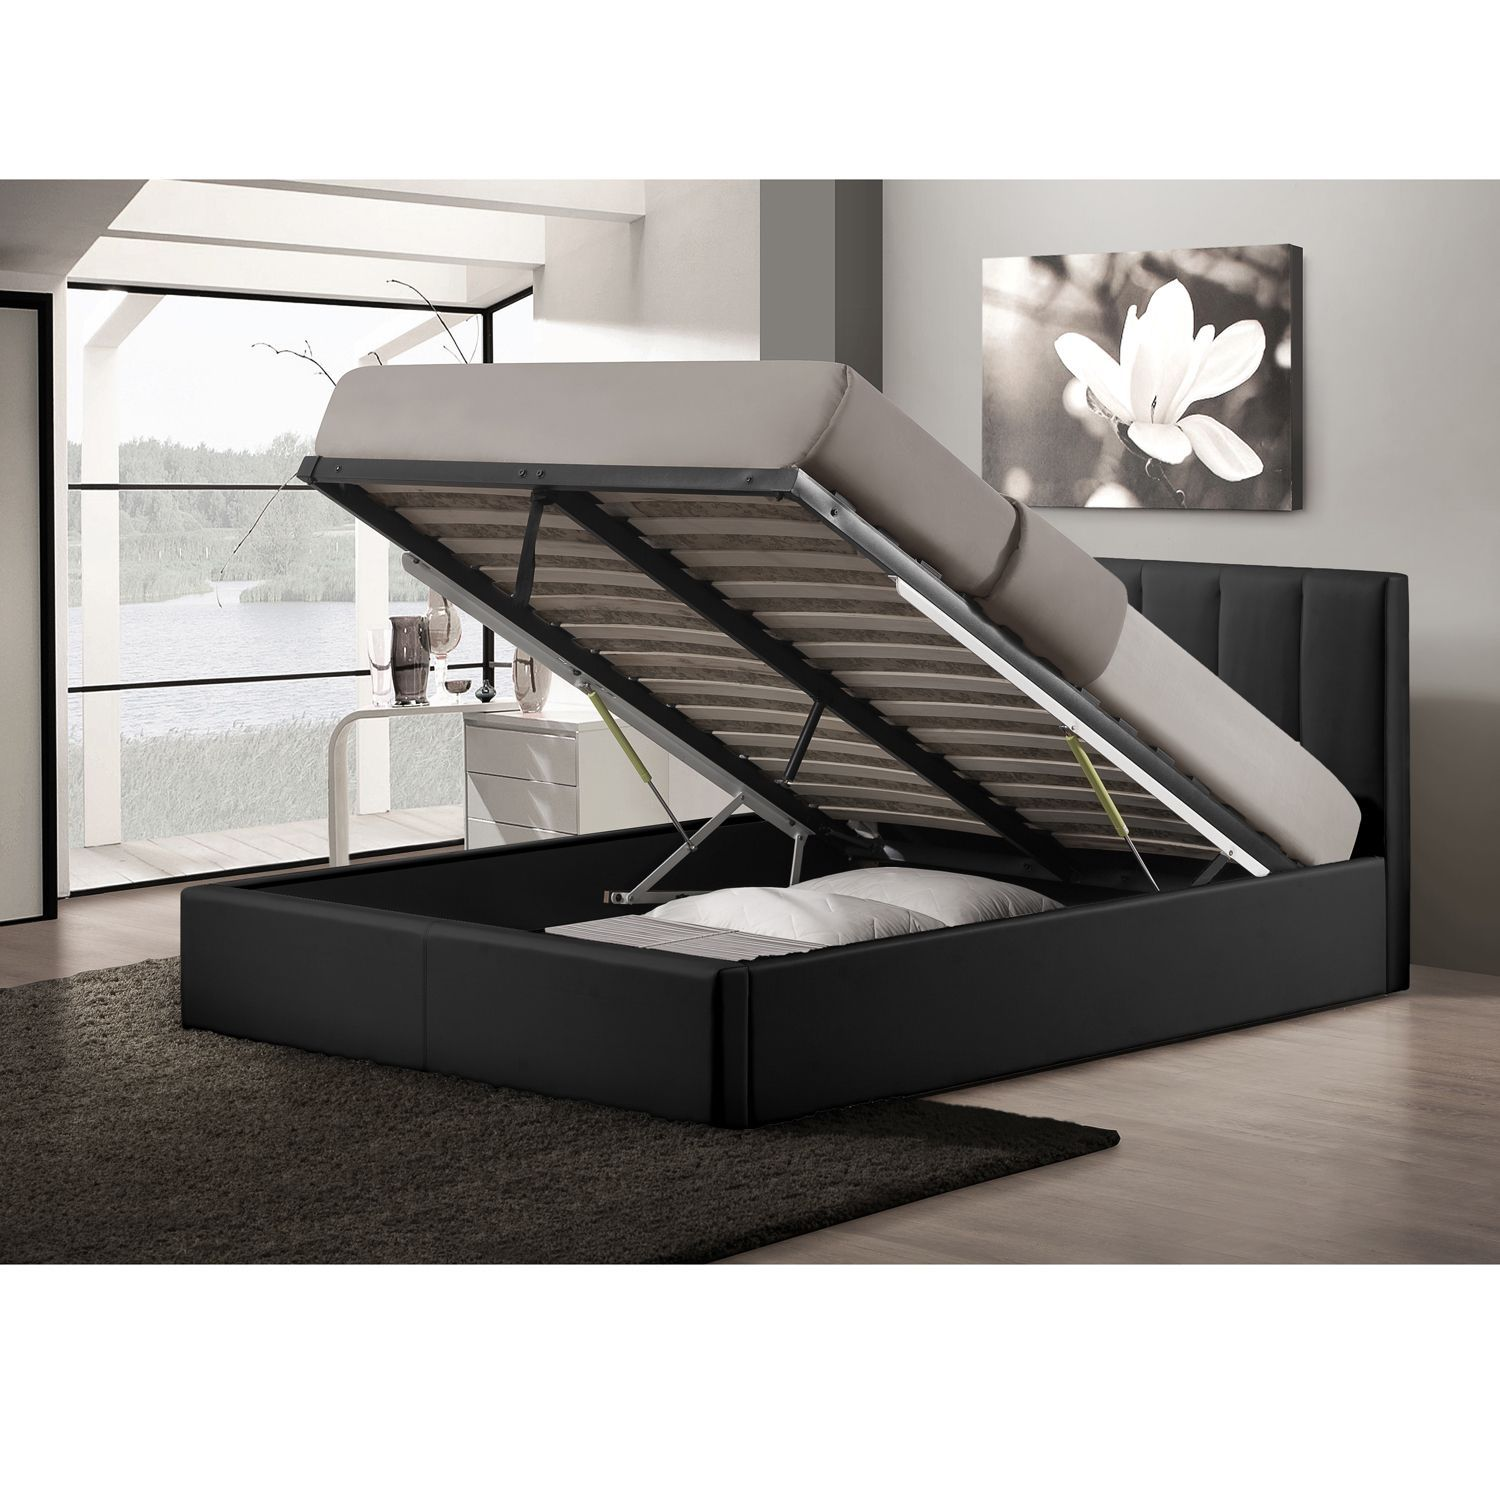 Lift Storage Bed Templemore Black Leather Contemporary Queen Size Gas Lift